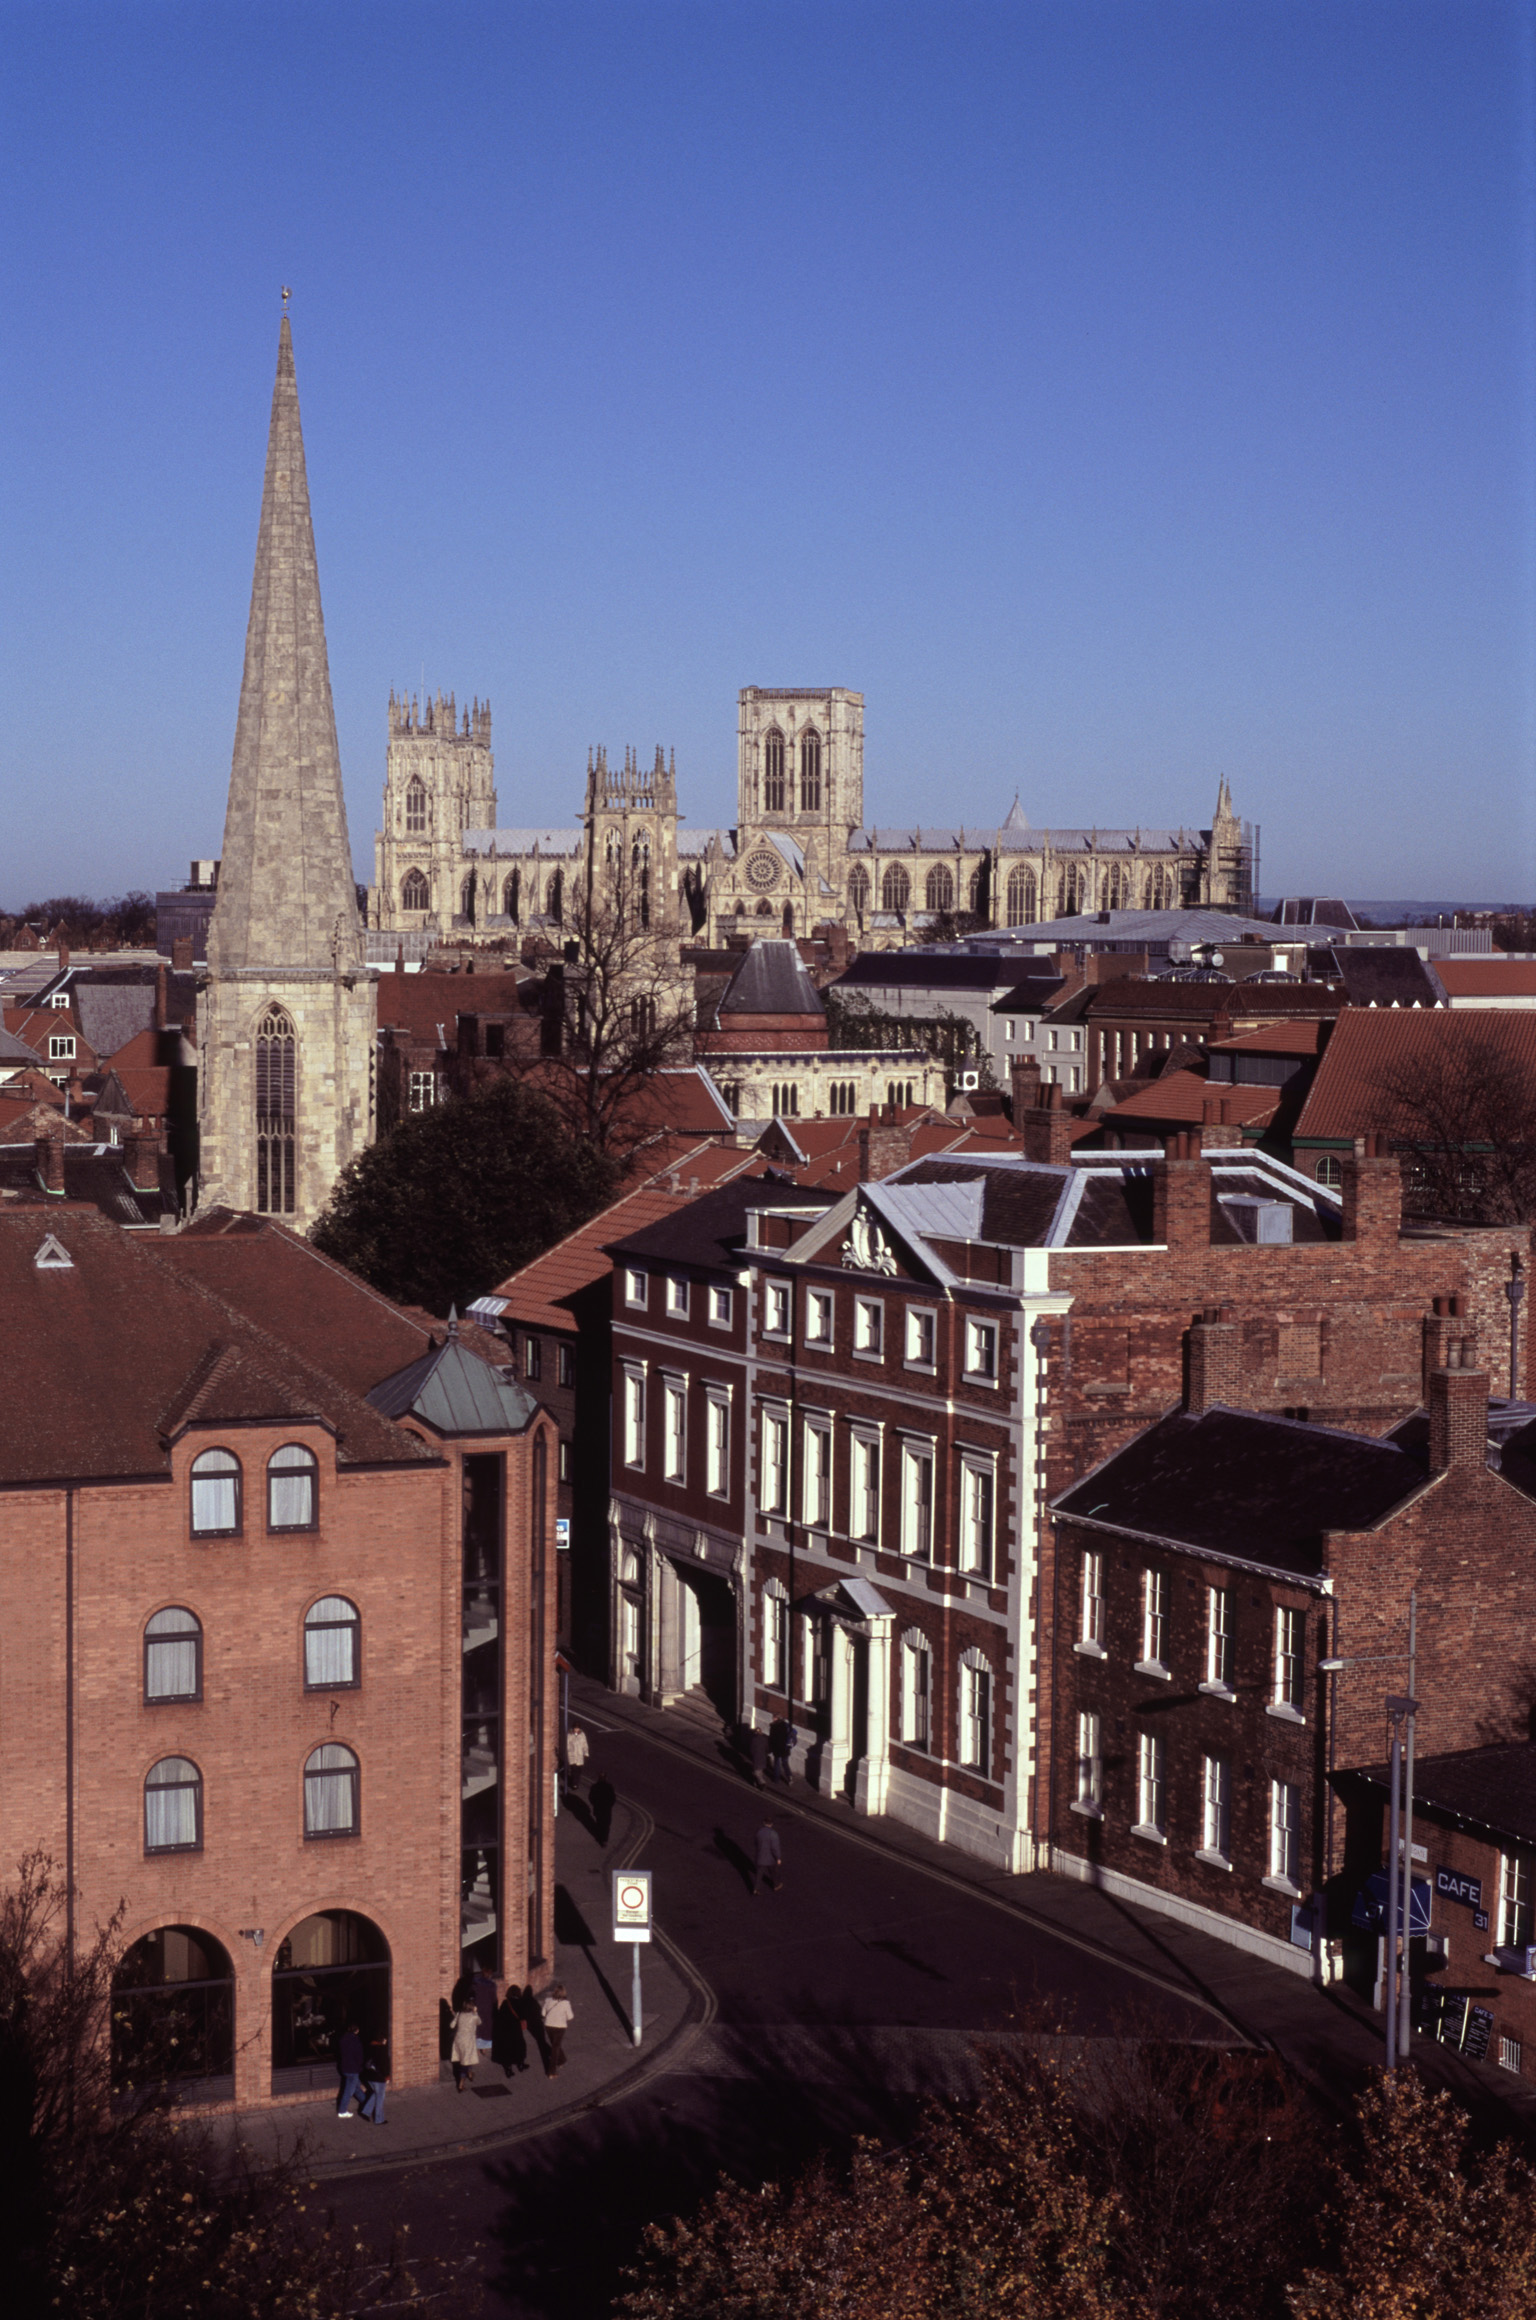 Aerial View of Historic Buildings and Streets at York, England. Captured with Light Blue Sky Background.